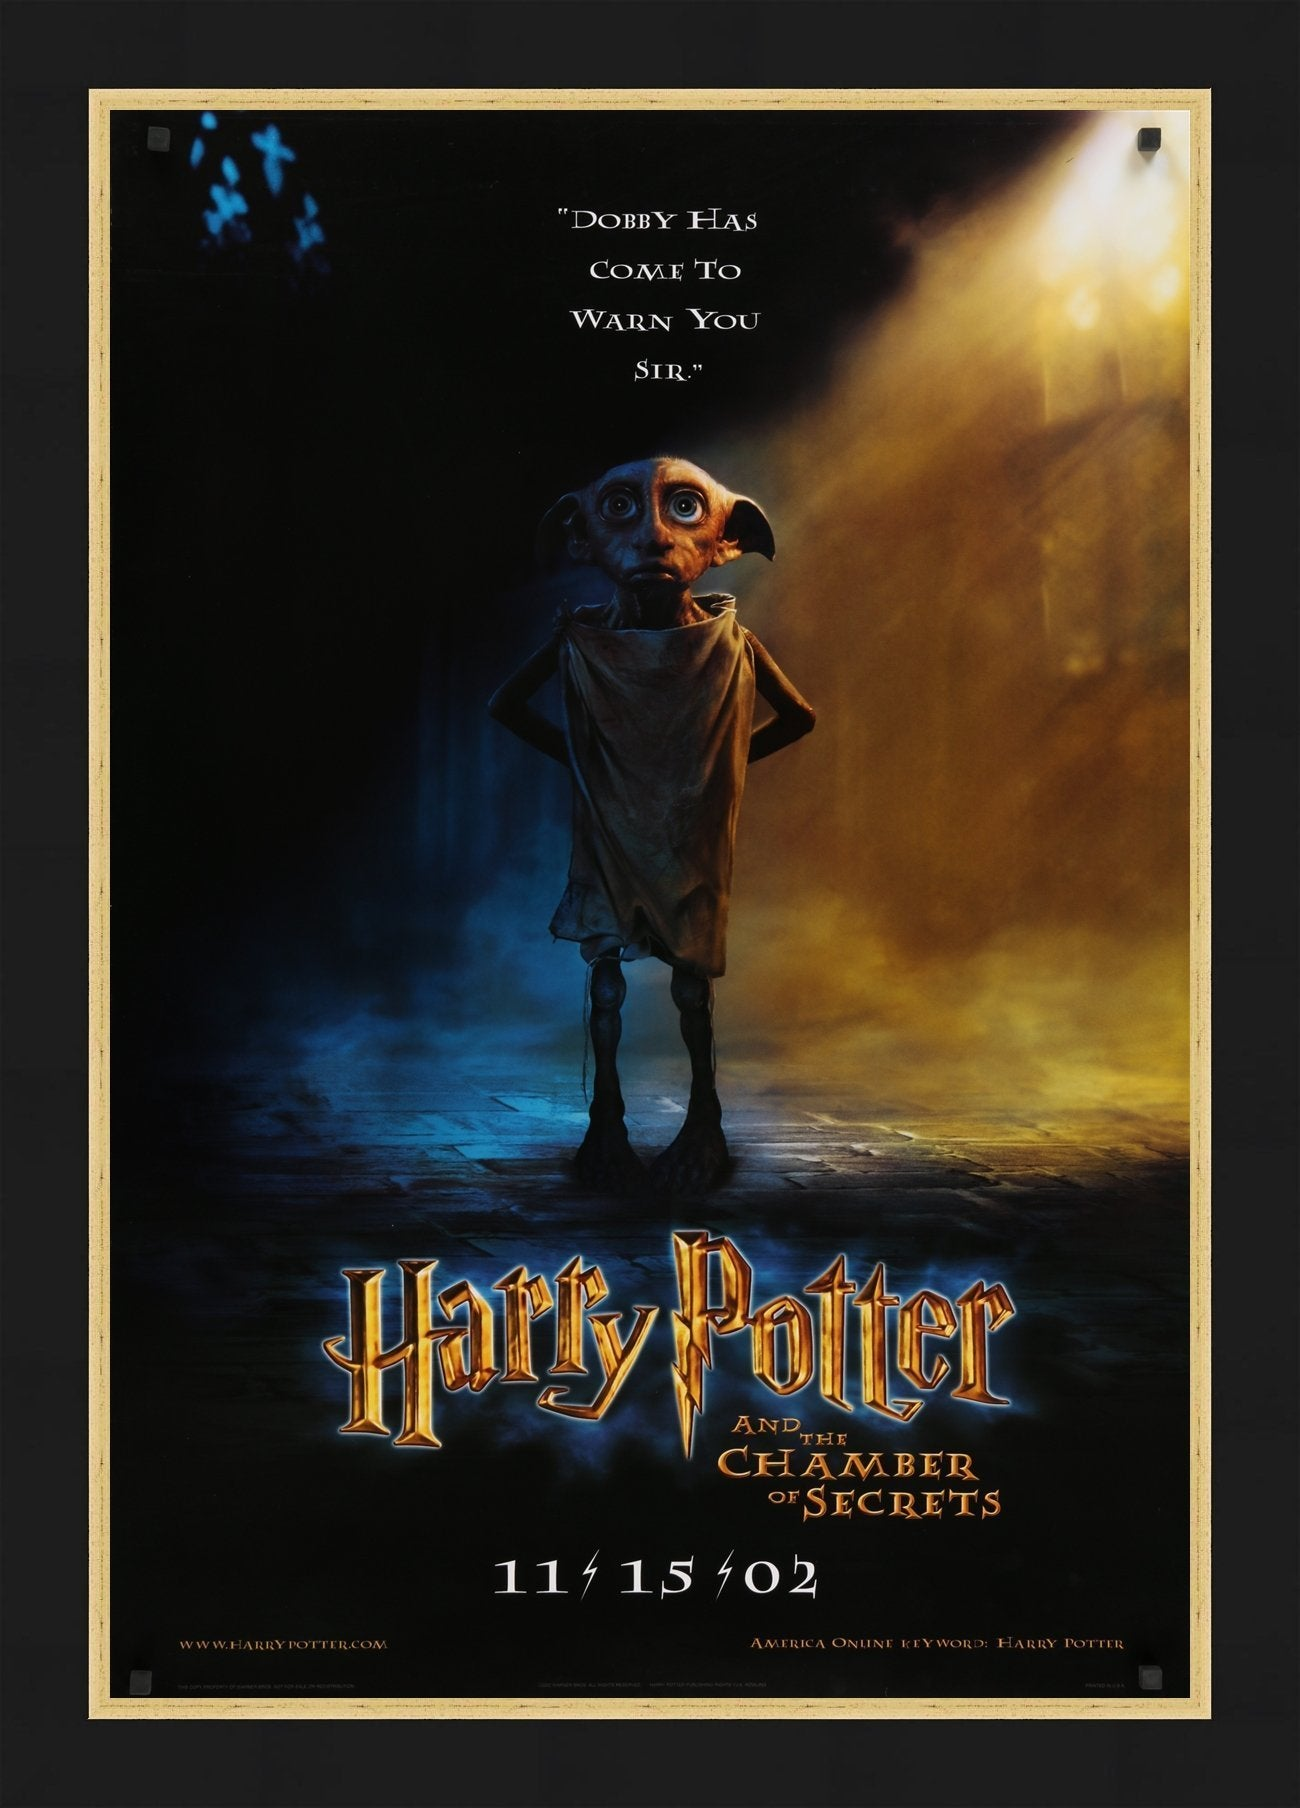 An original movie poster for HARRY POTTER and THE CHAMBER OF SECRETS